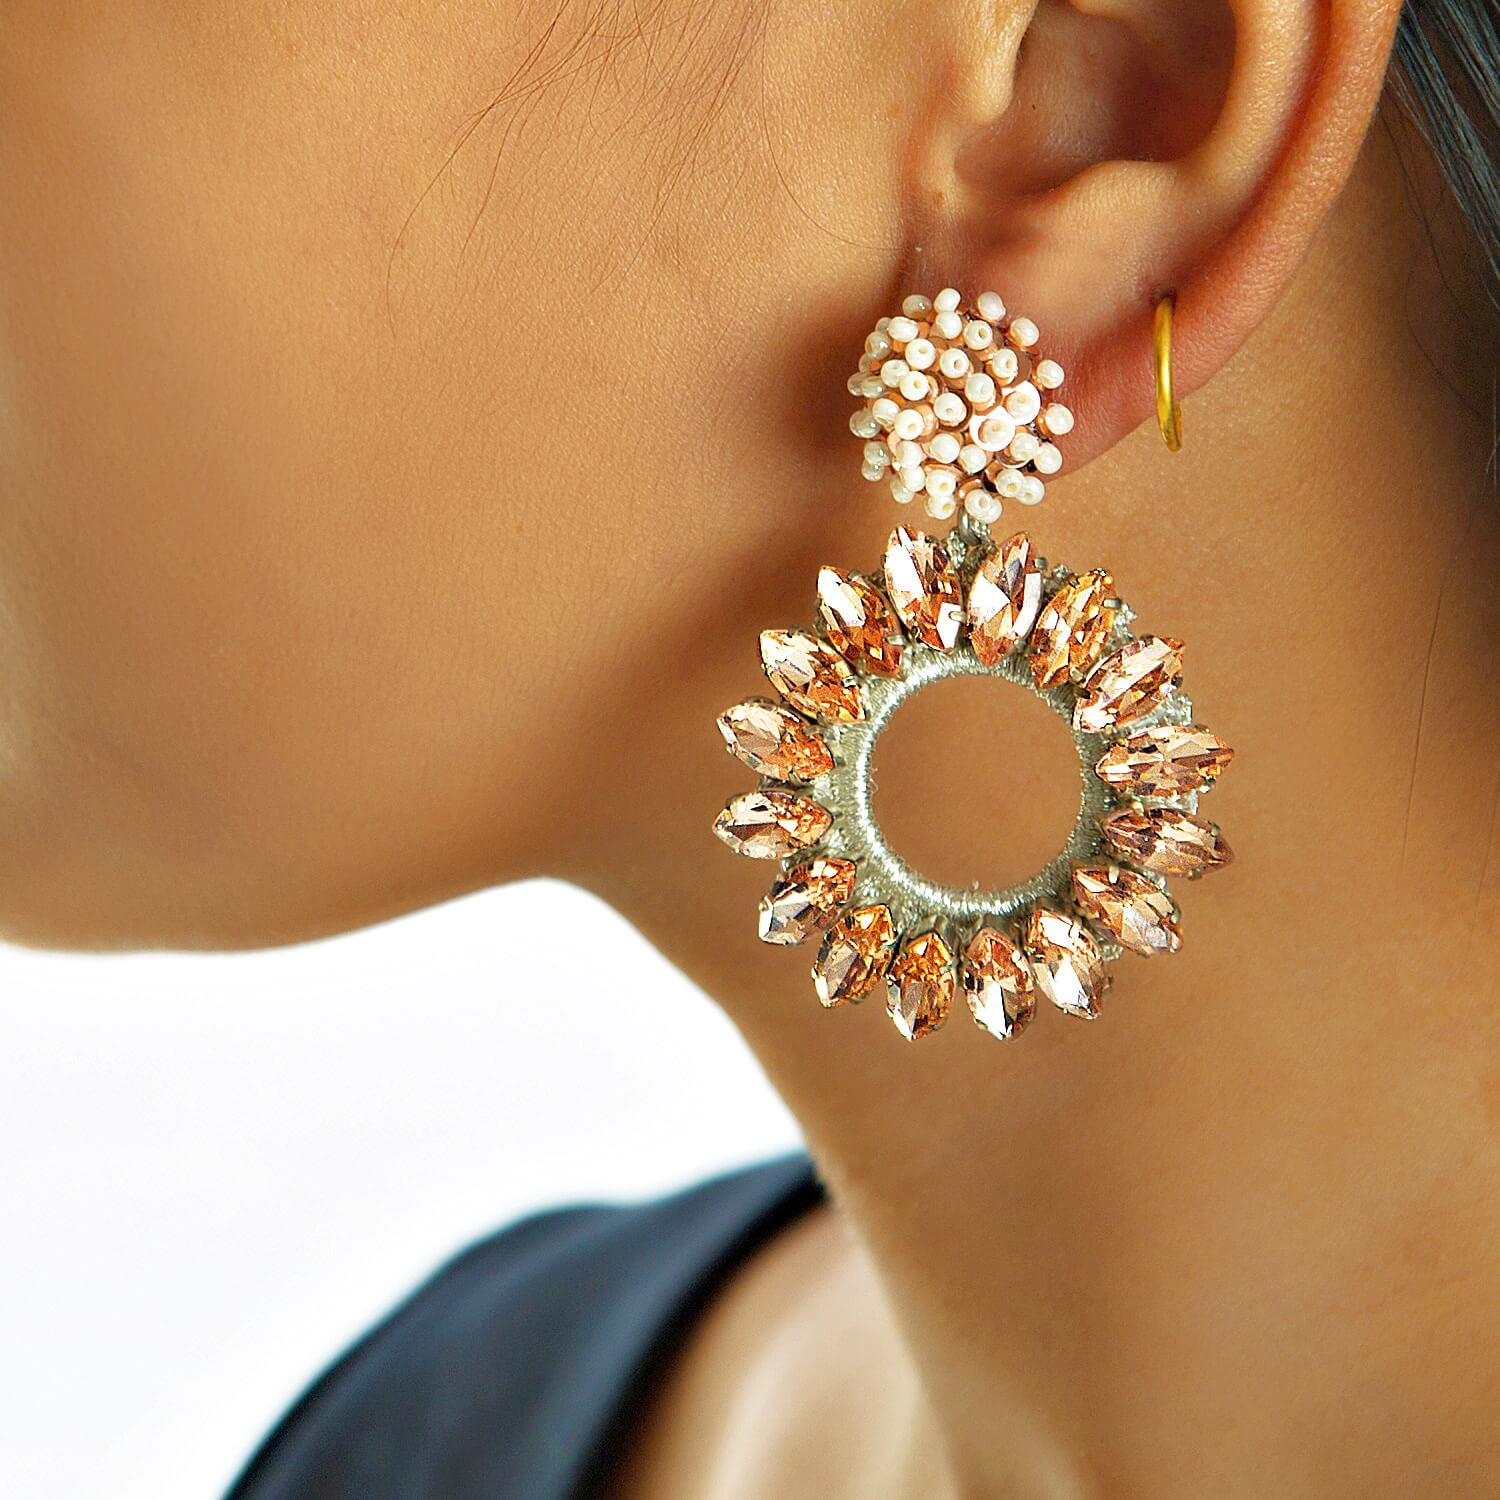 Lorelai Blush Earring - Model